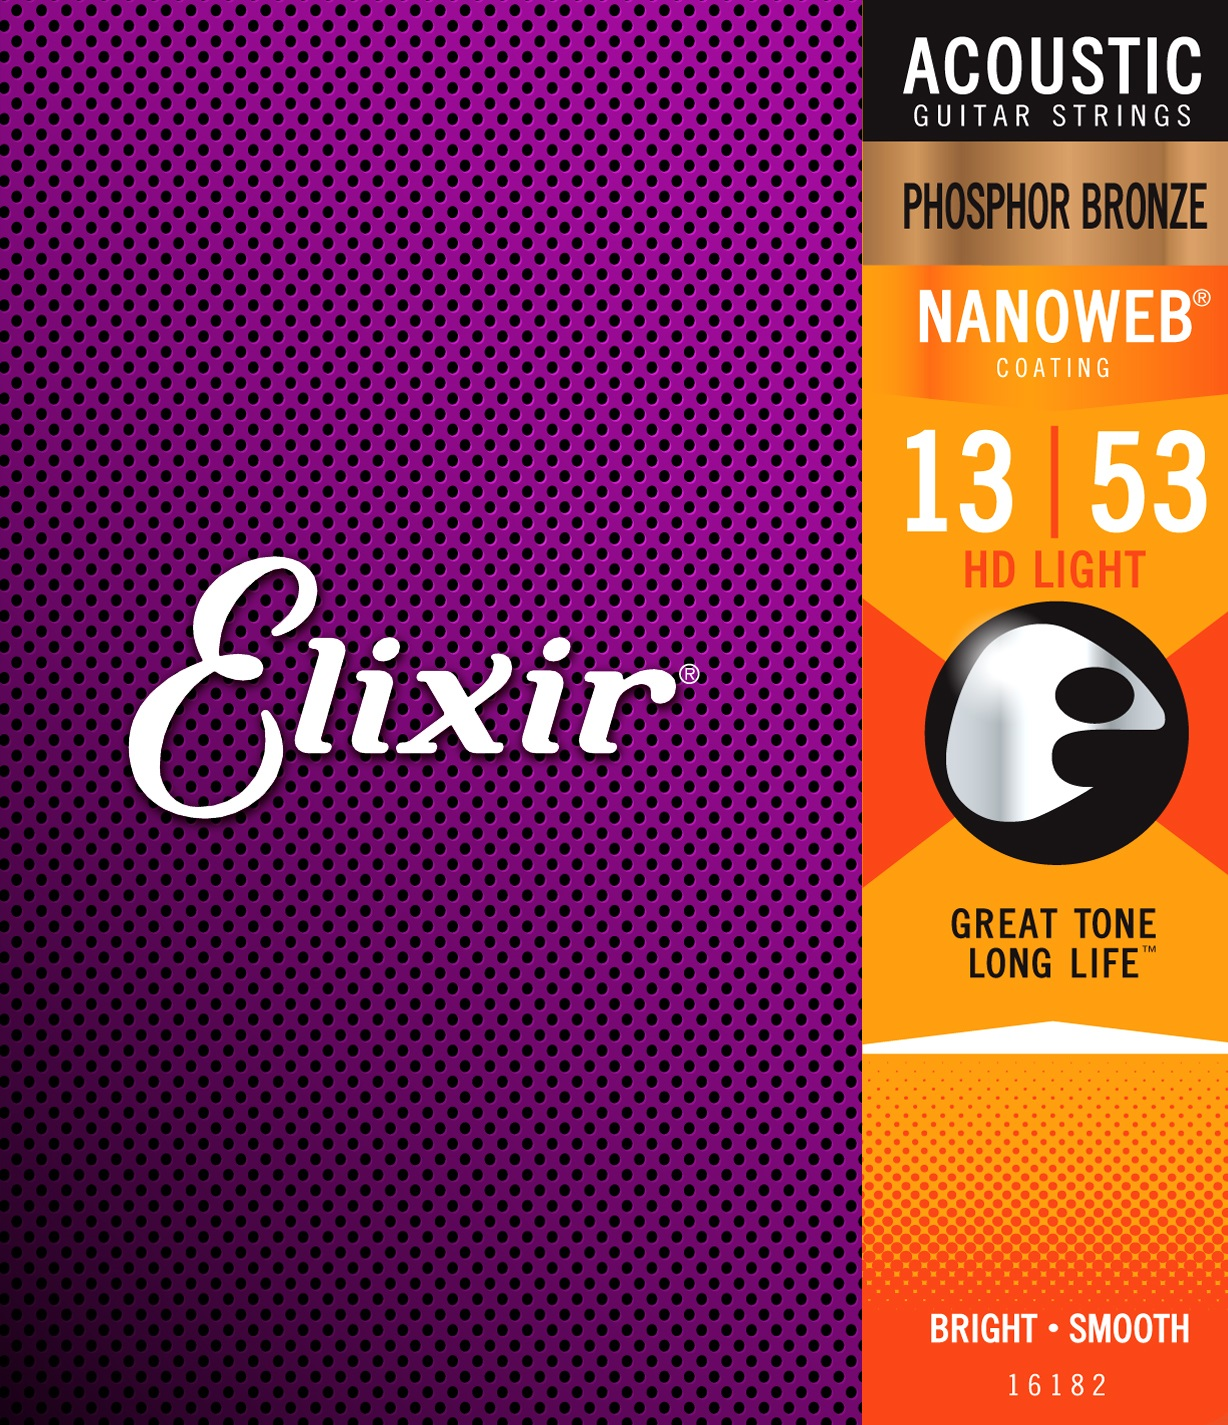 Elixir Nanoweb Phosphor Bronze HD Light